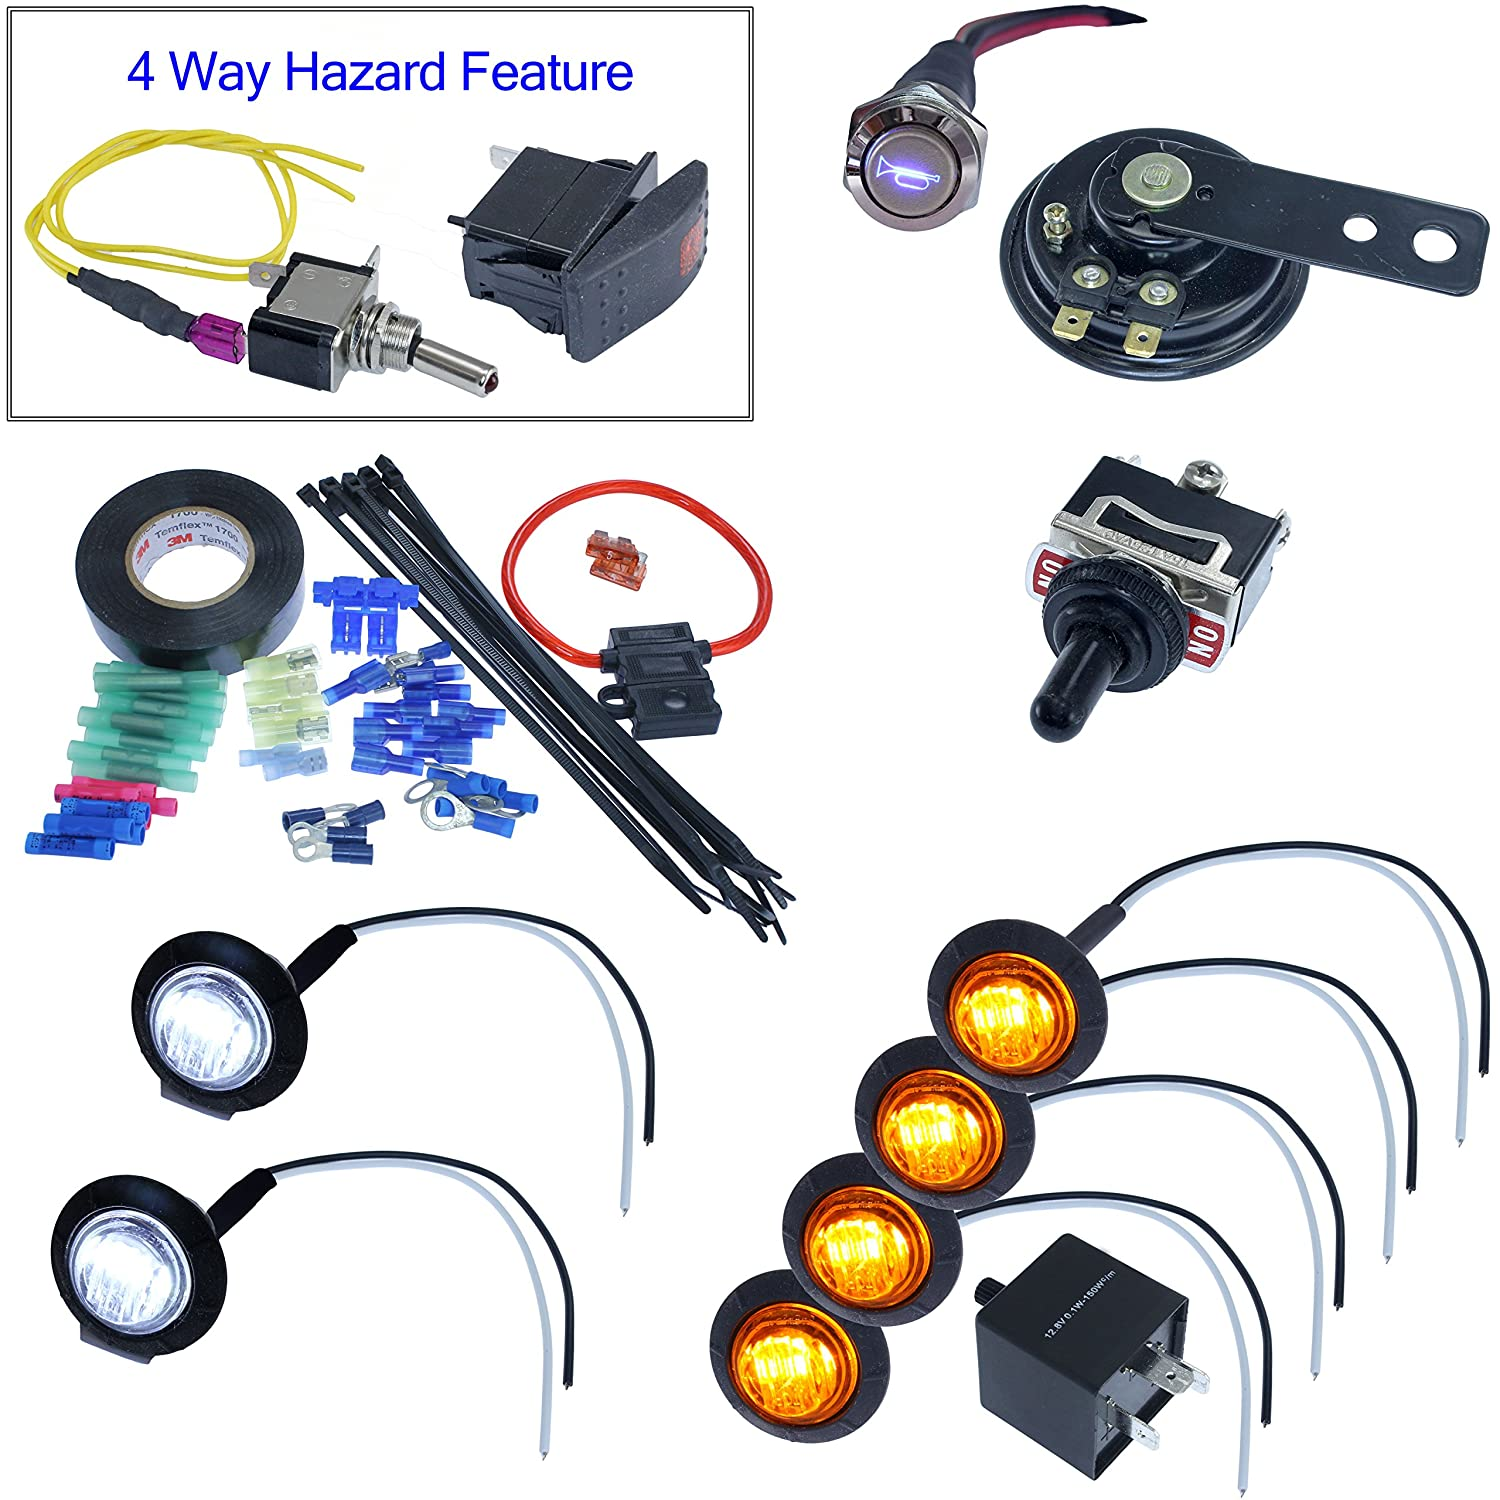 Turn Signal Kits Horn Install Kit Toggle Switch Honda Ruckus Wiring Automotive